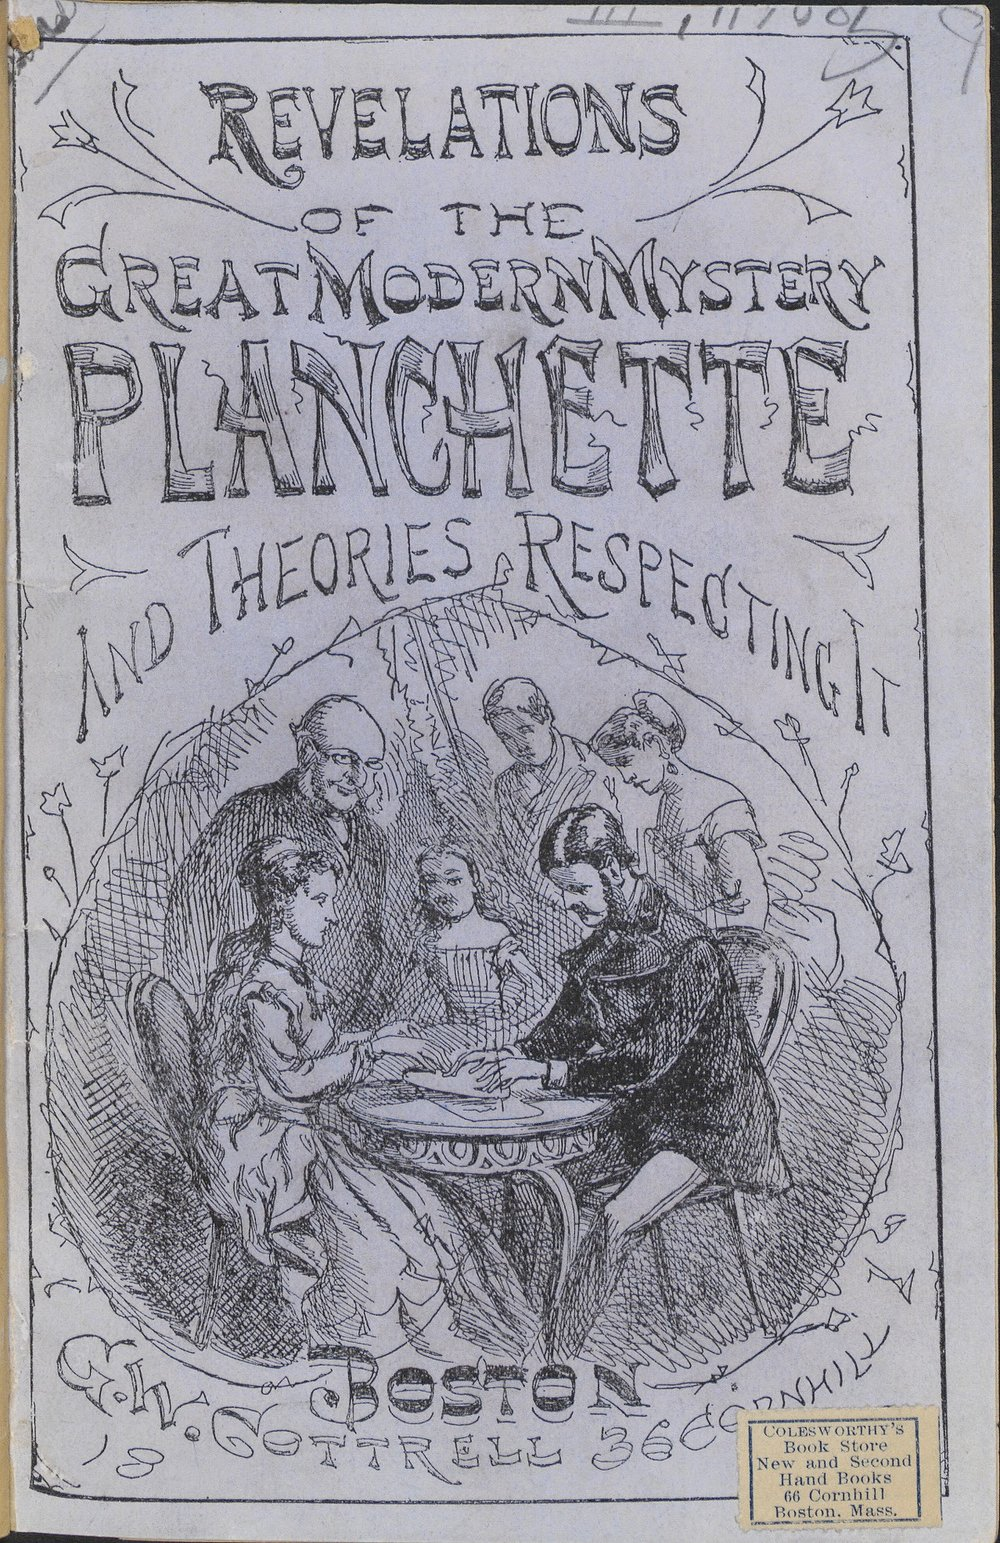 You don't need to go out to see a professional medium: you can get a planchette and get your house haunted in no time!  From  Revelations of the great modern mystery, planchette, and theories respecting it . Boston: G.W. Cottrell, 1868.  Courtesy of H a rvard University Library.